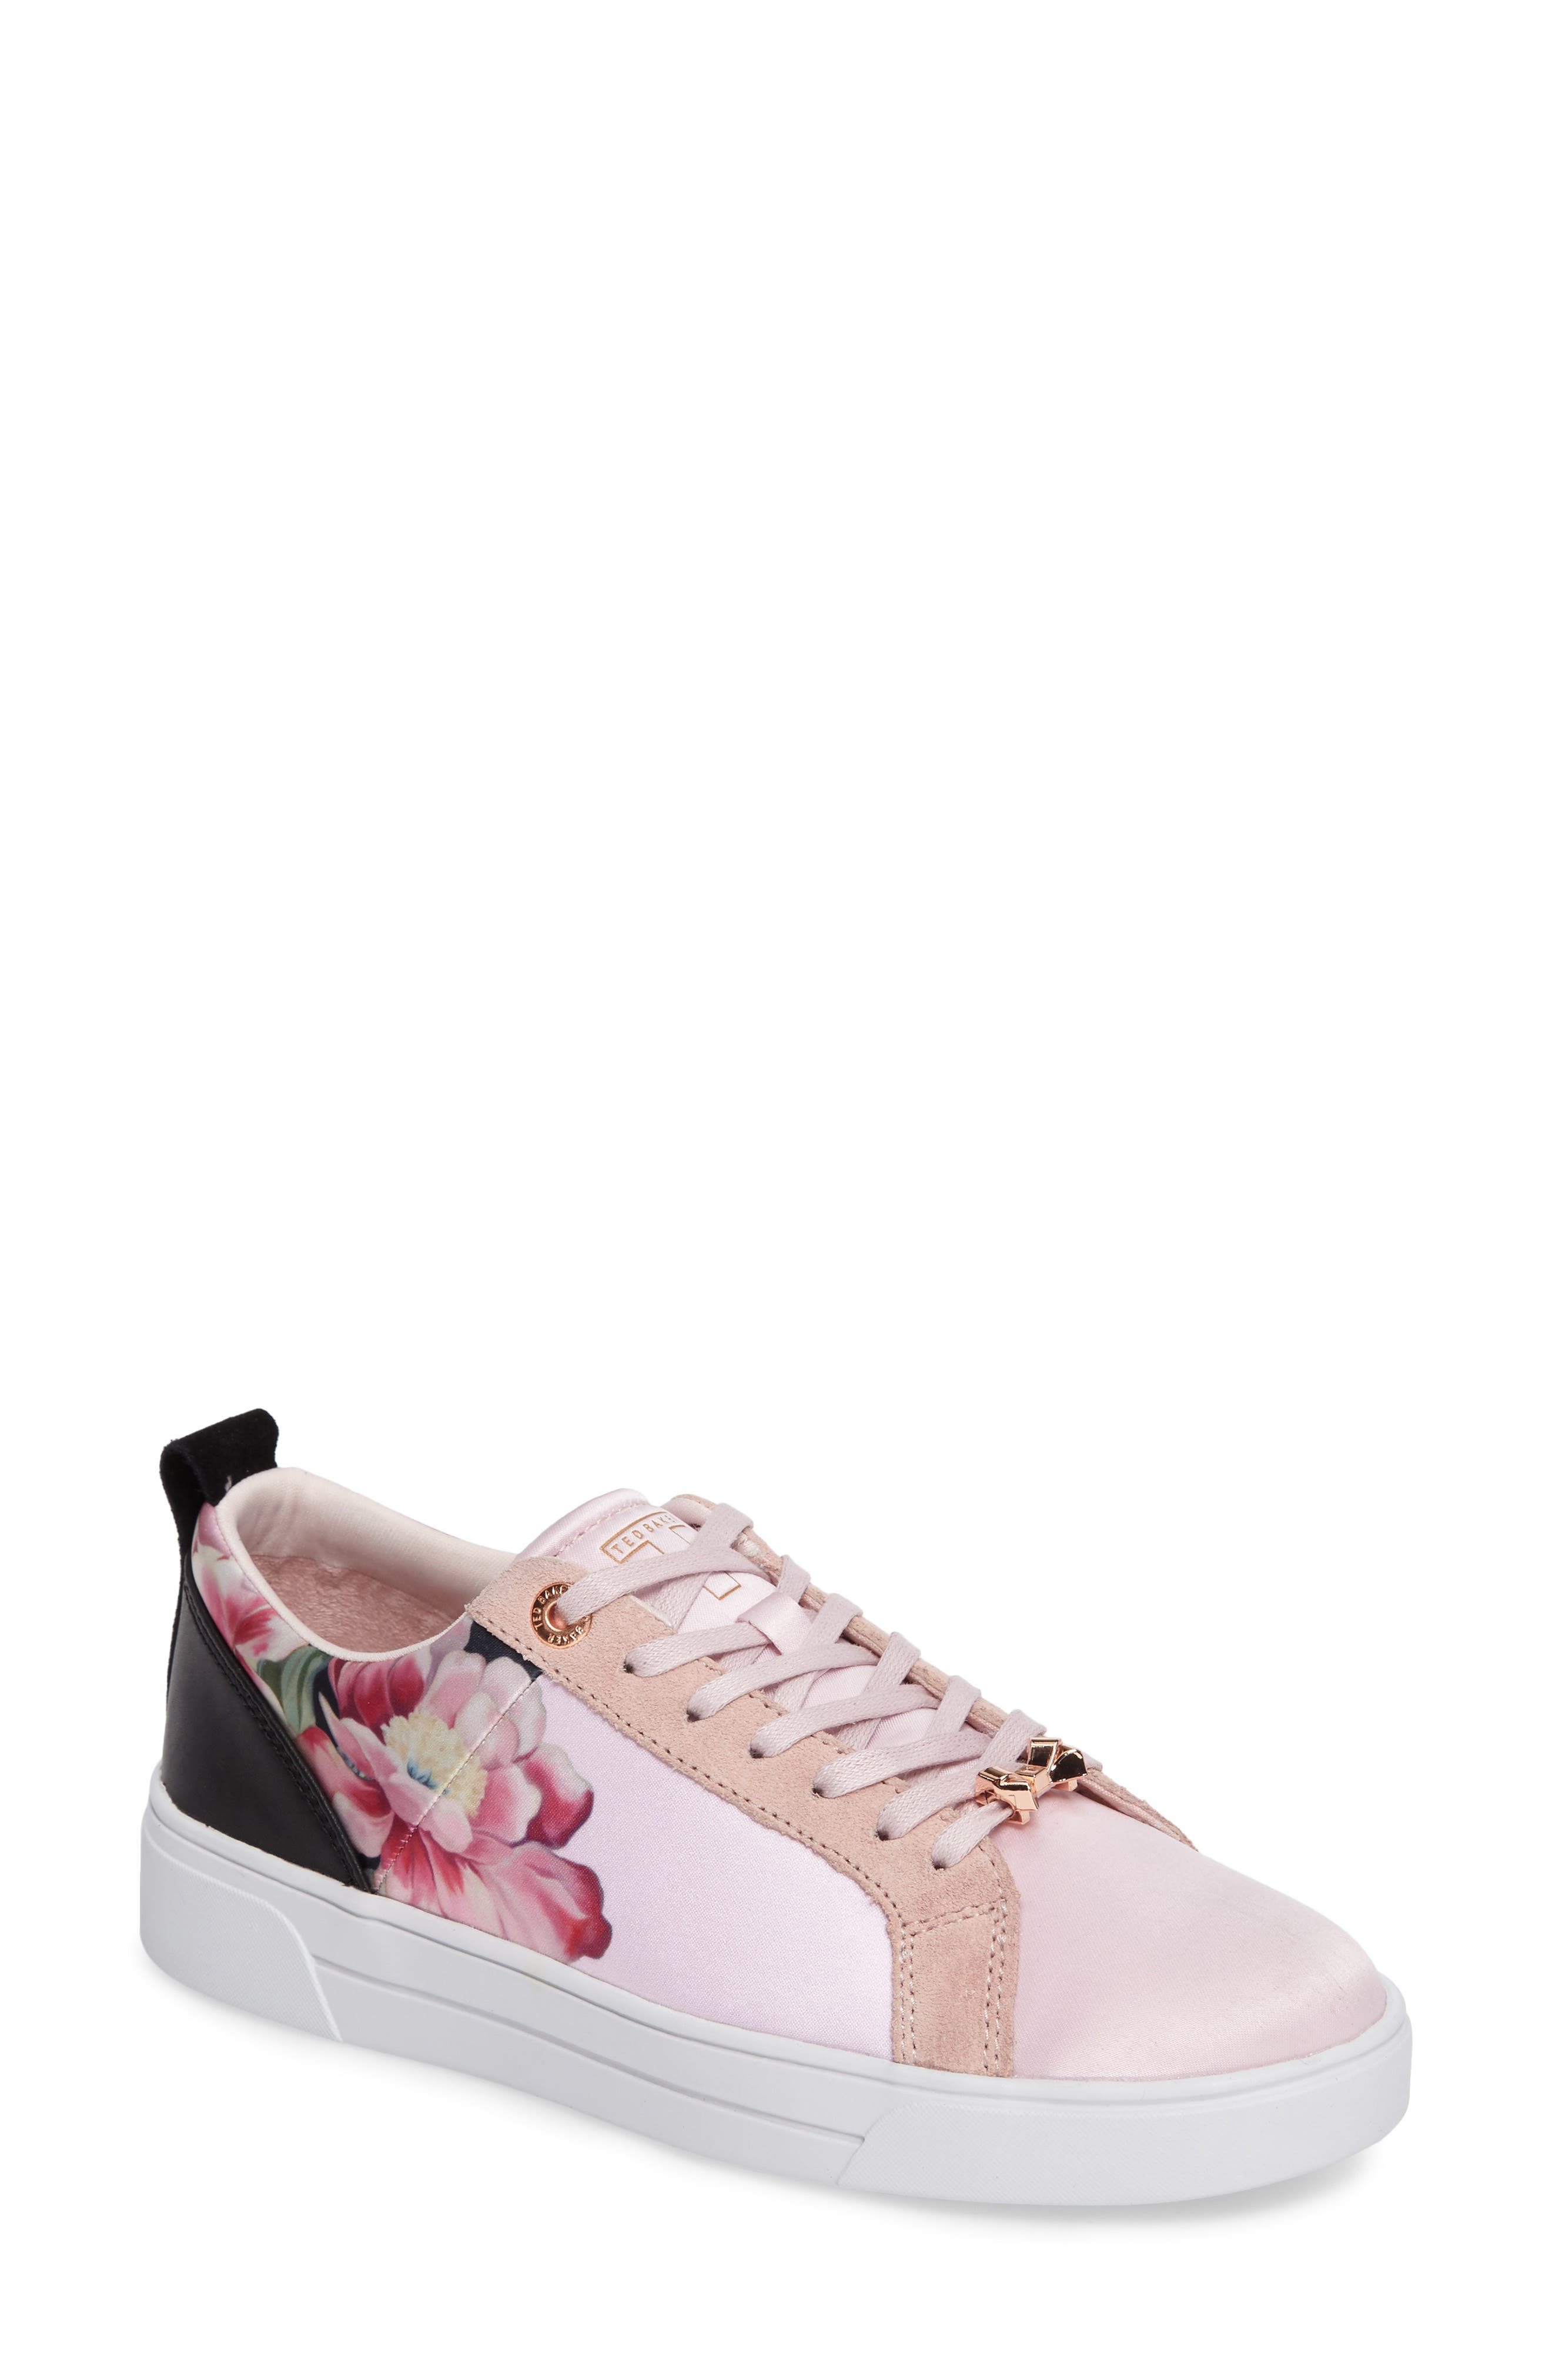 Main Image - Ted Baker London Fushar Sneaker (Women)